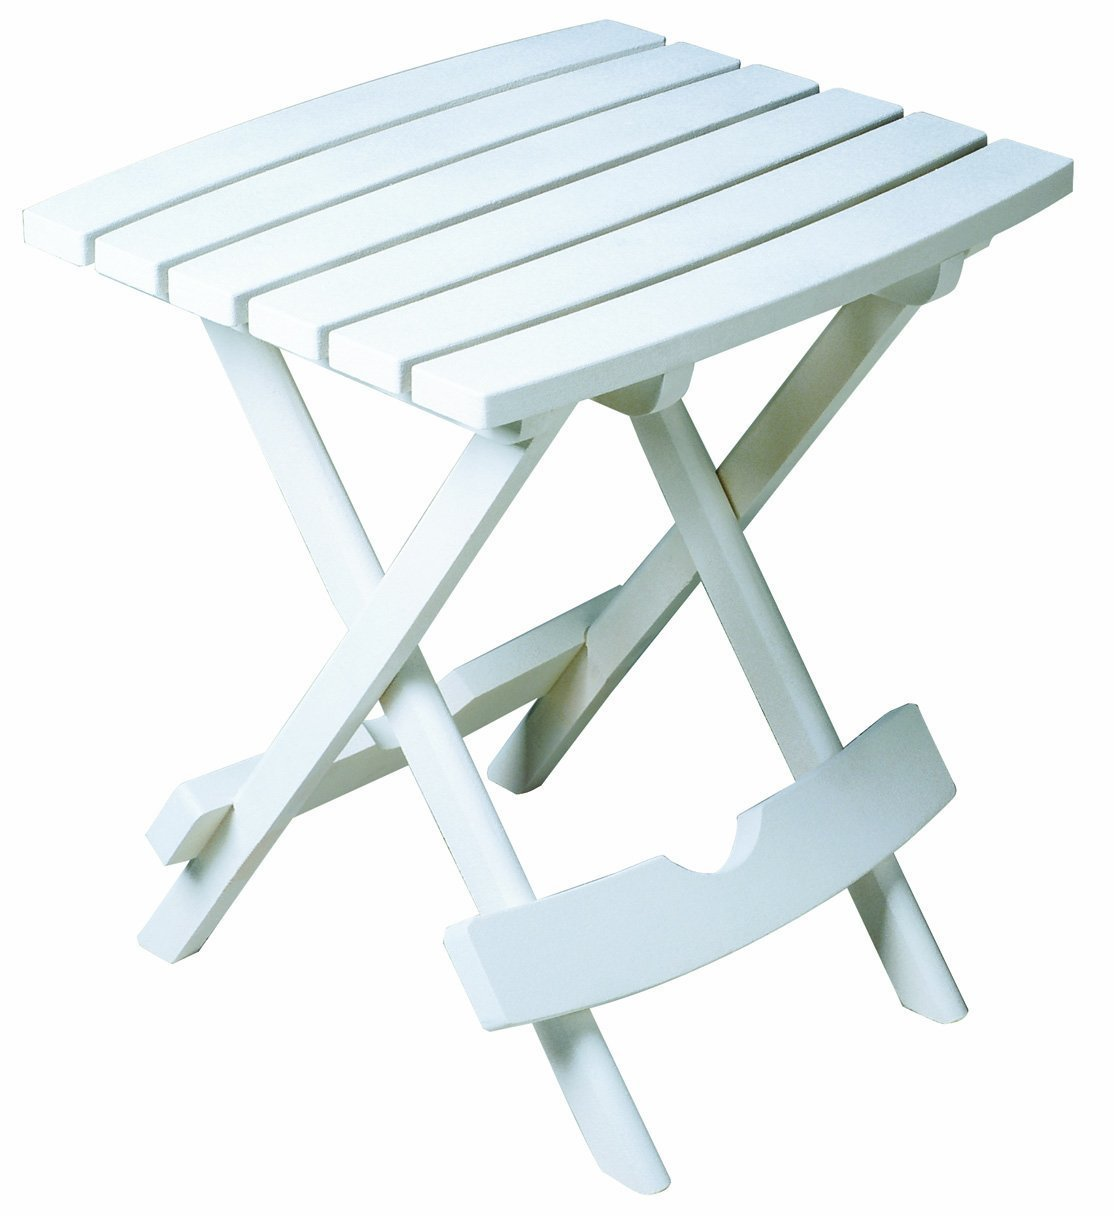 Adams Manufacturing 8500-48-3700 Plastic Quik-Fold Side Table, White by Adams Manufacturing